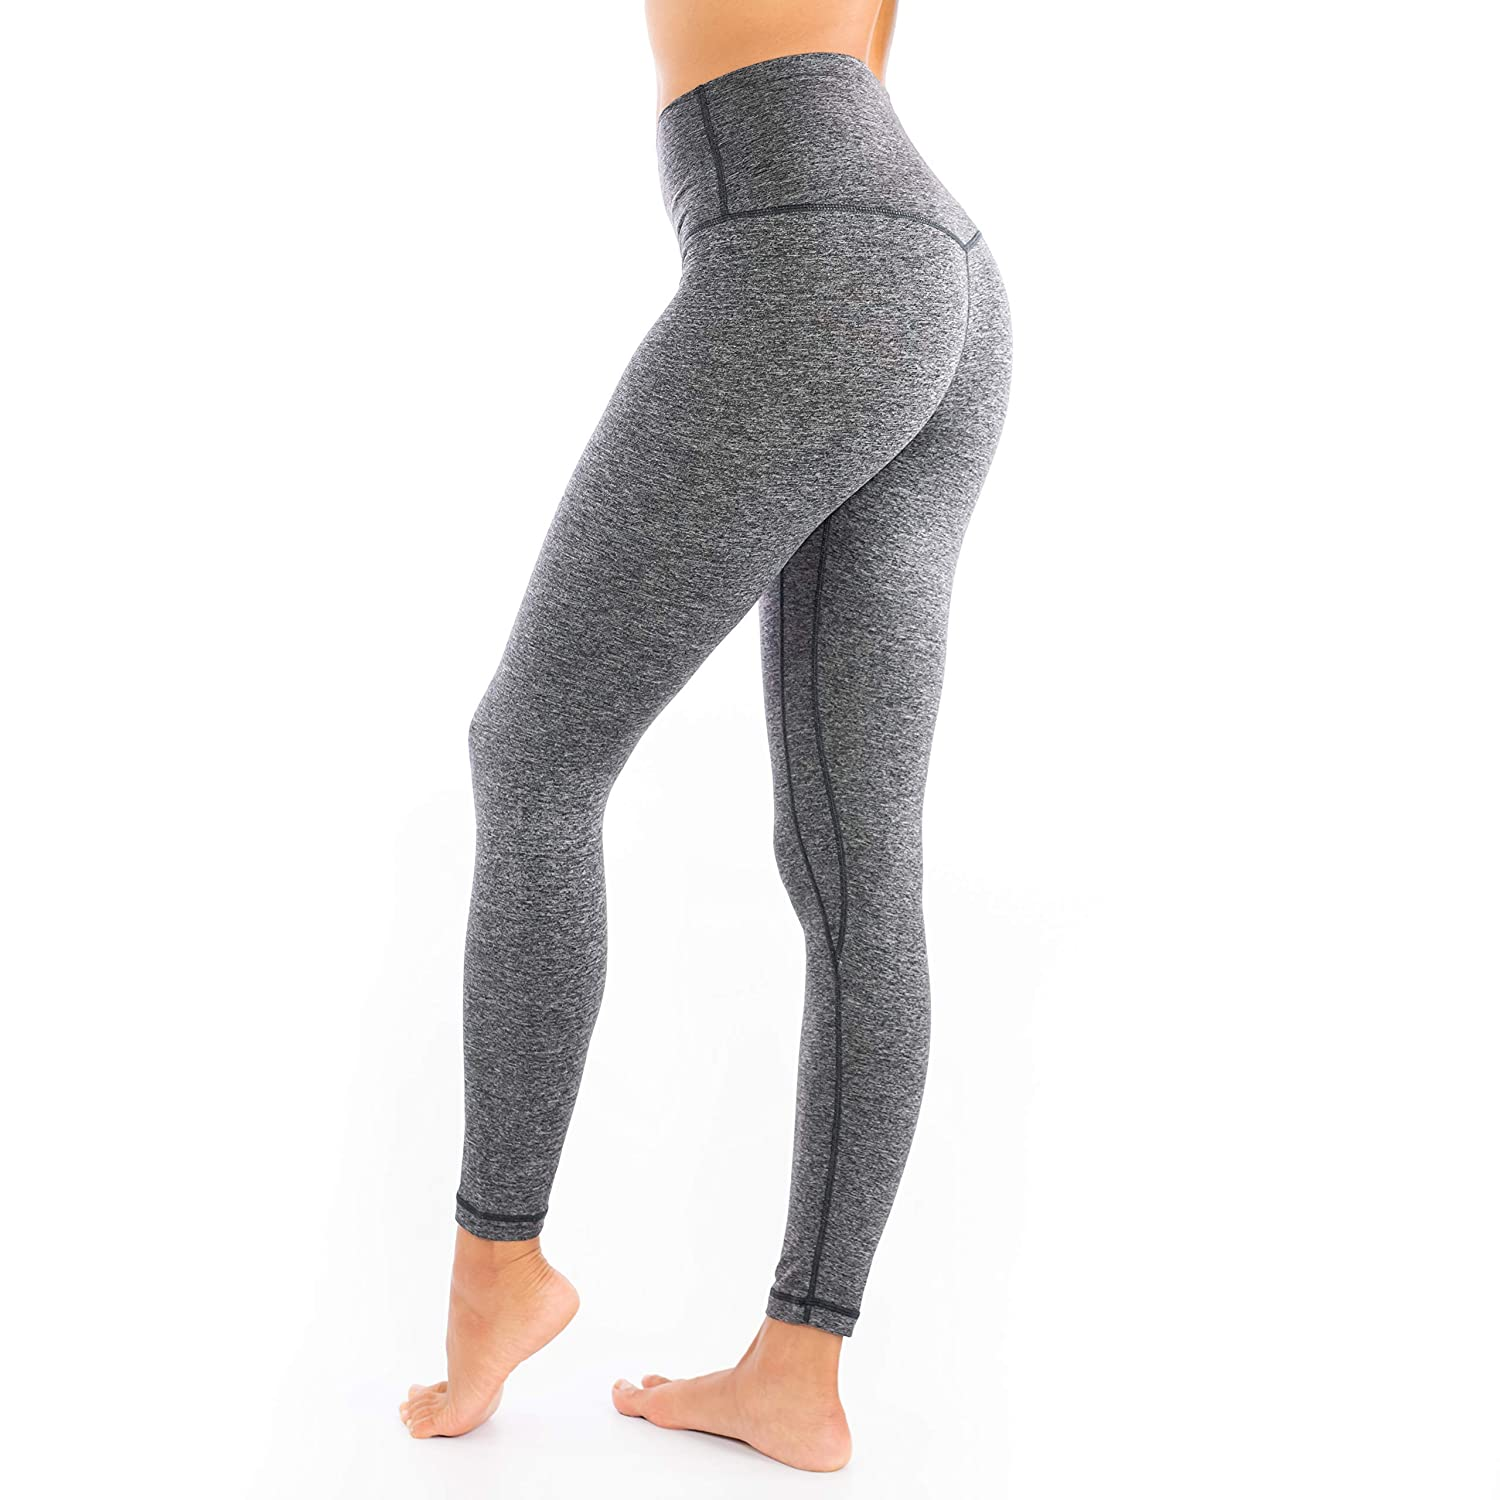 High Waisted Yoga Pants - Buttery Soft Gray - Medium